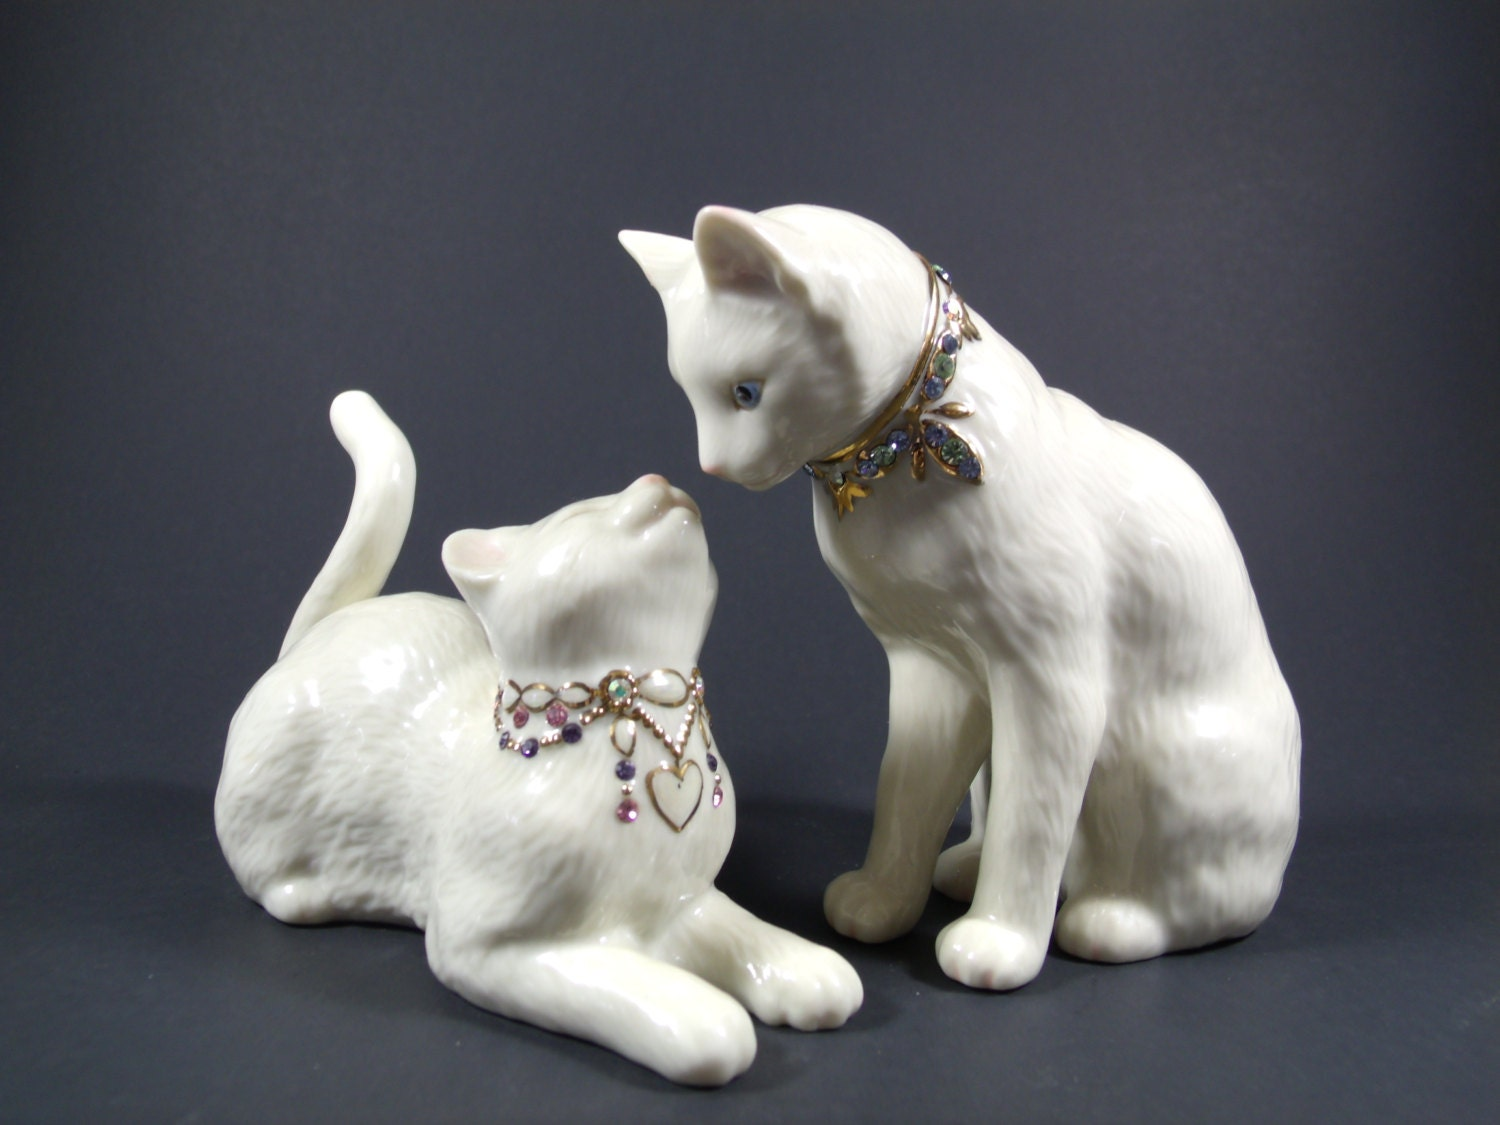 Lenox Wedding Gifts: Vintage Lenox Cat Figurines Awake To A Kiss Wedding Gift